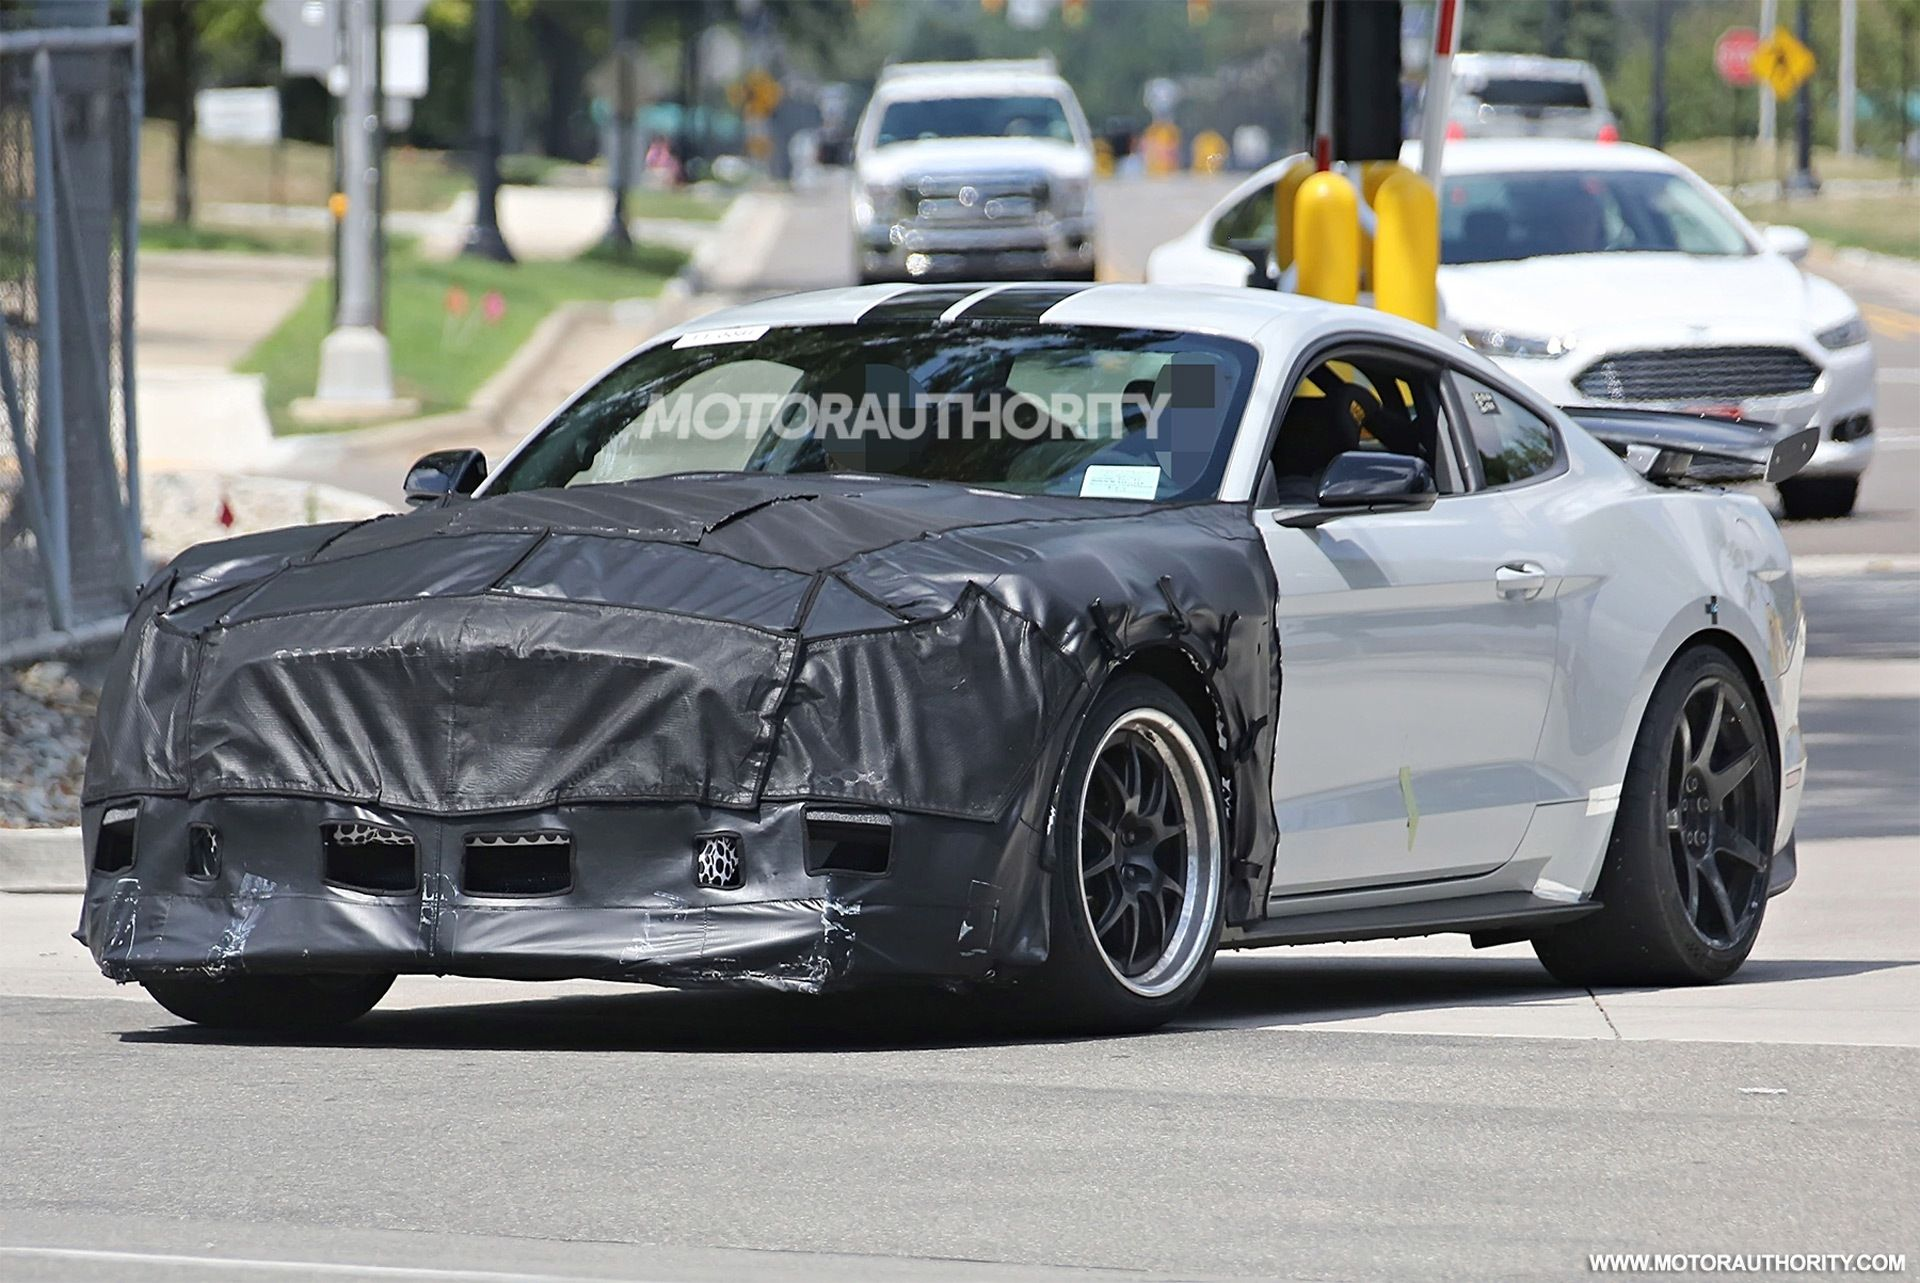 55 The Spy Shots Ford Mustang Svt Gt 500 Rumors